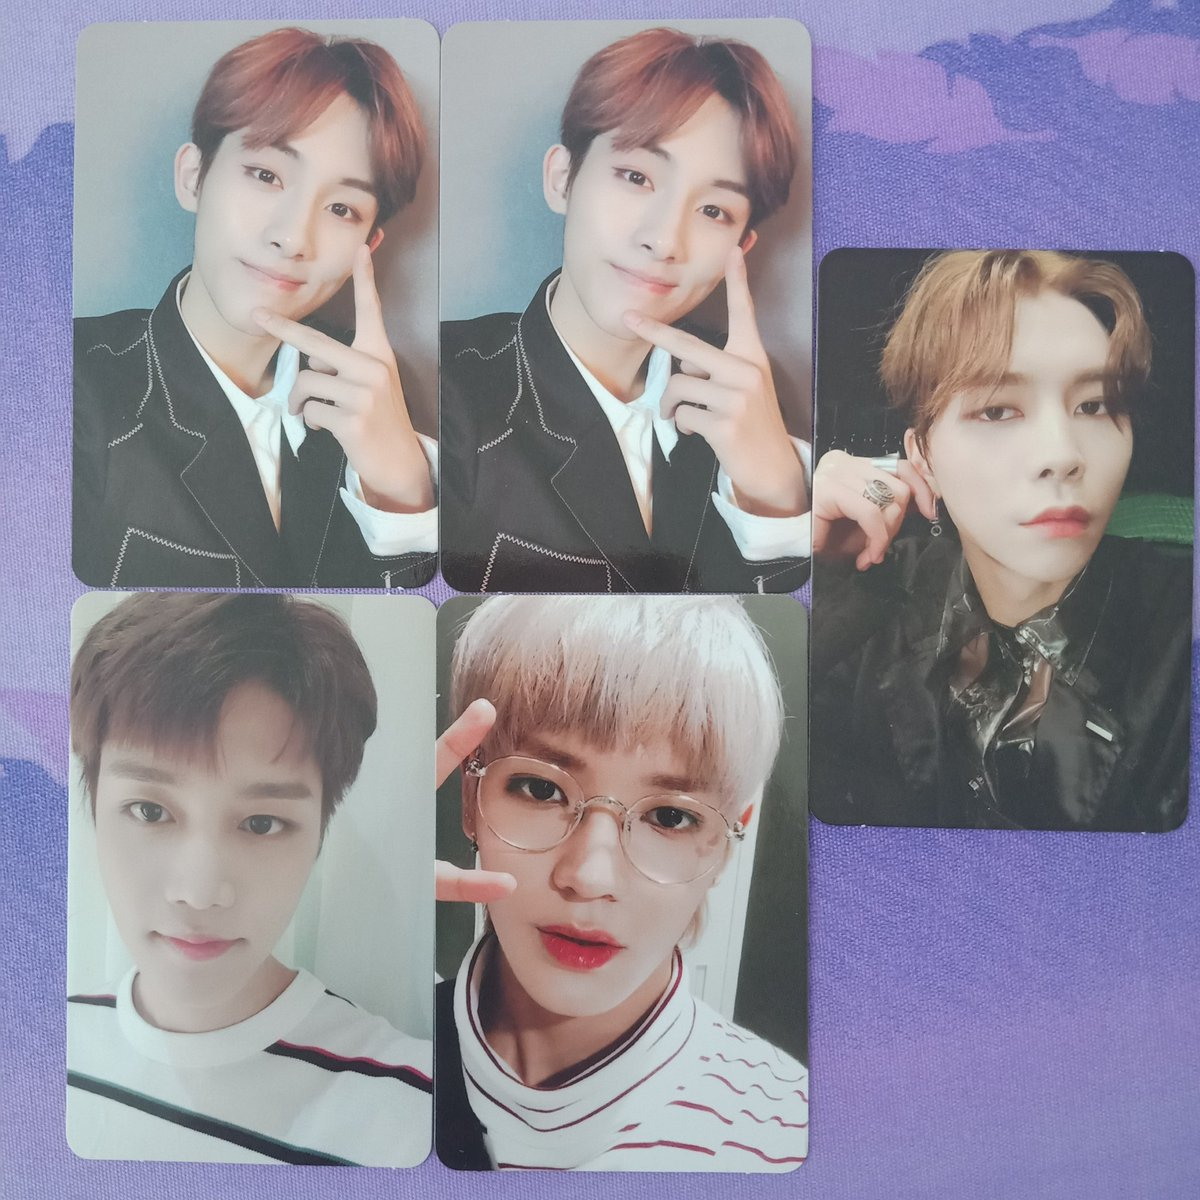 wts INSTOCK nct 127 regulate album photocards, prices for different members varies. if interested please sent me a dm, thanks~ #nct #nct127 #nct127regulate #regulate #winwin #johnny #taeil #taeyong https://t.co/JllEfyzmza